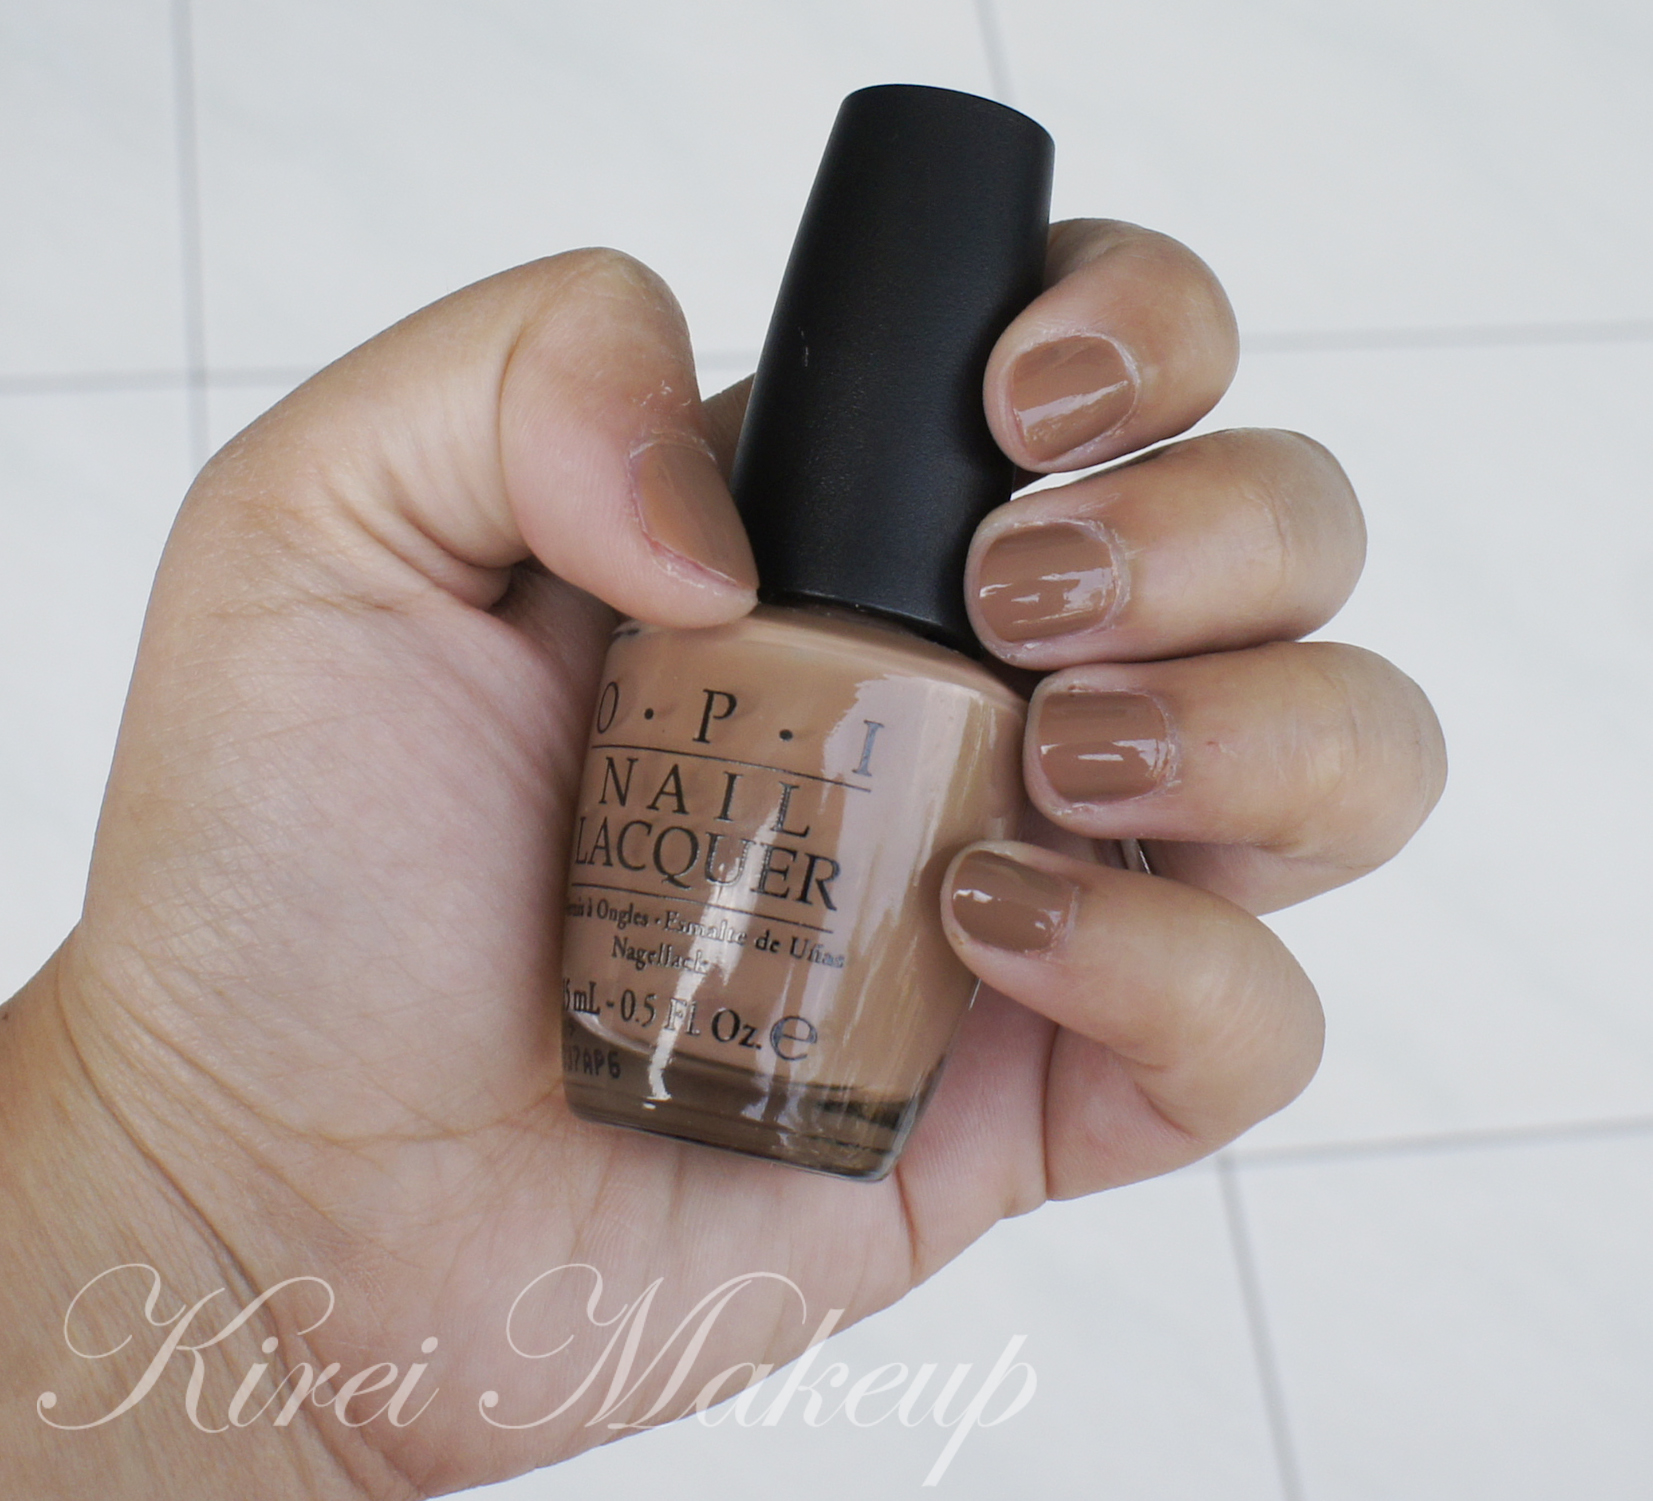 nail polish for job interview Archives - Kirei Makeup